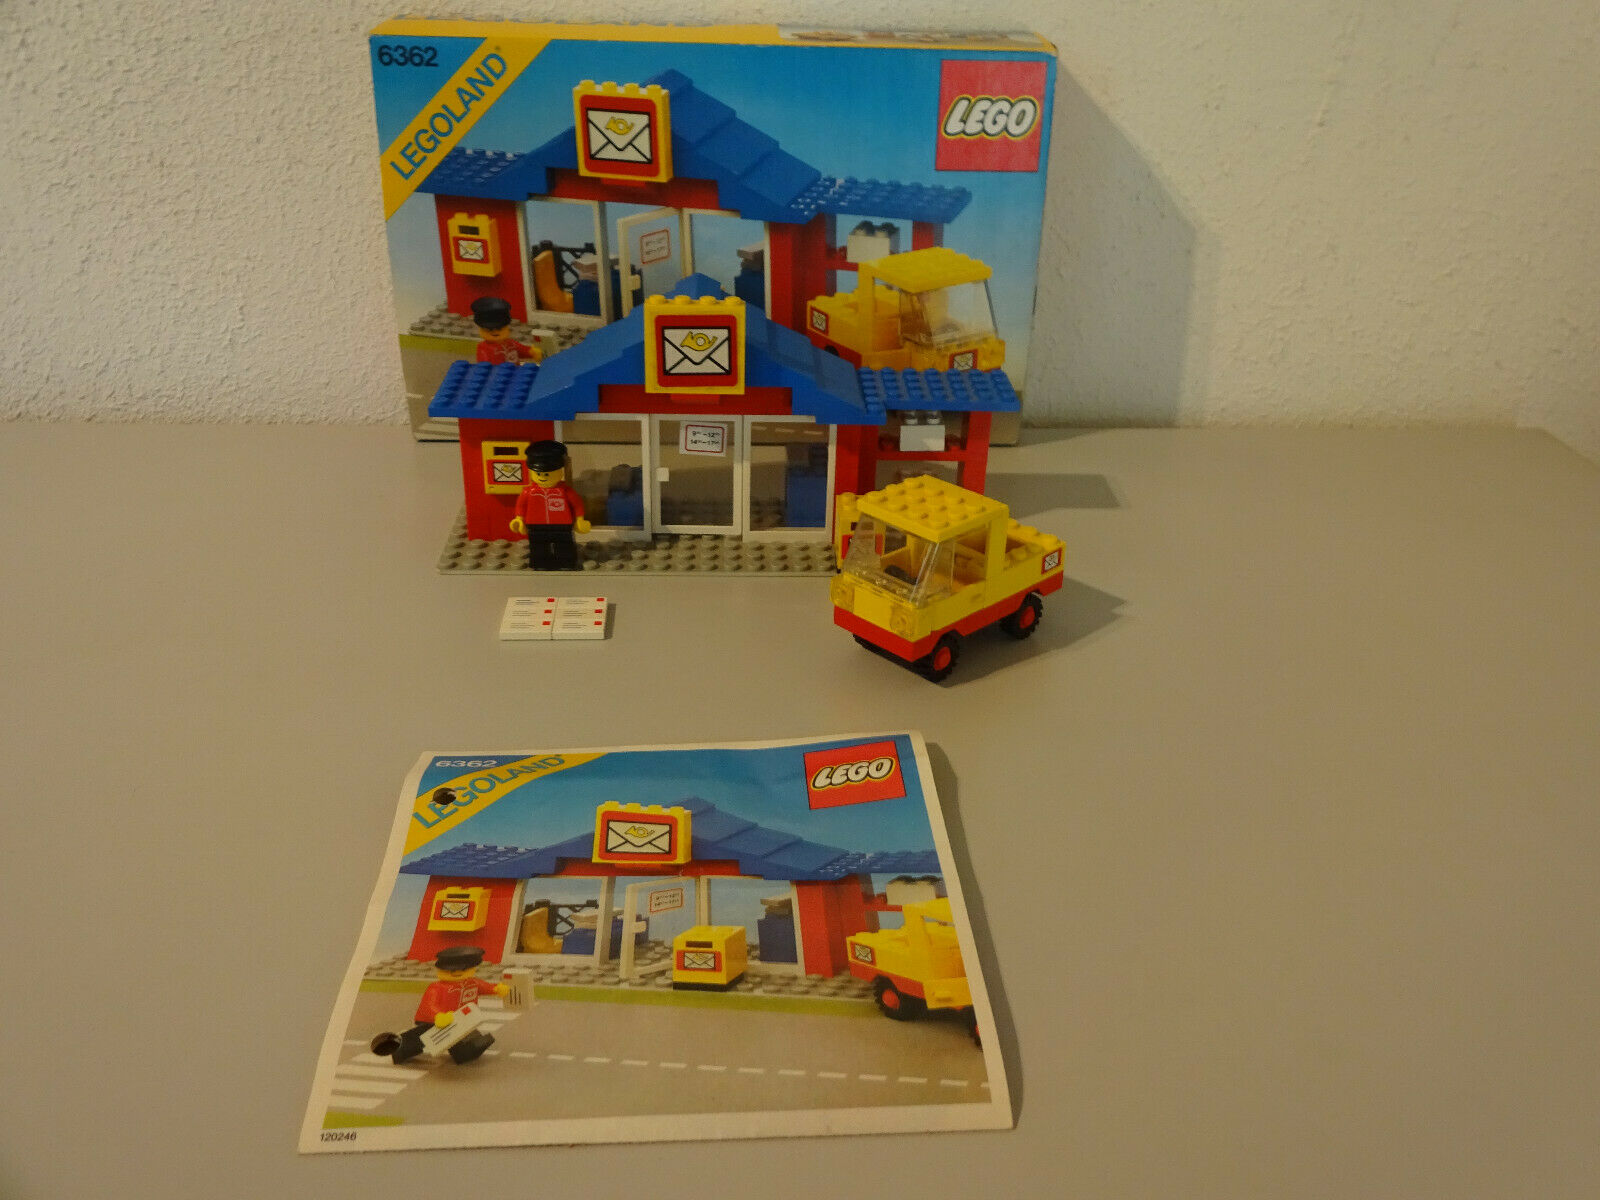 (Go) 6362 Legoland post Office post with Ovp Ovp Ovp Ba 100% Complete Used Rare 94529e